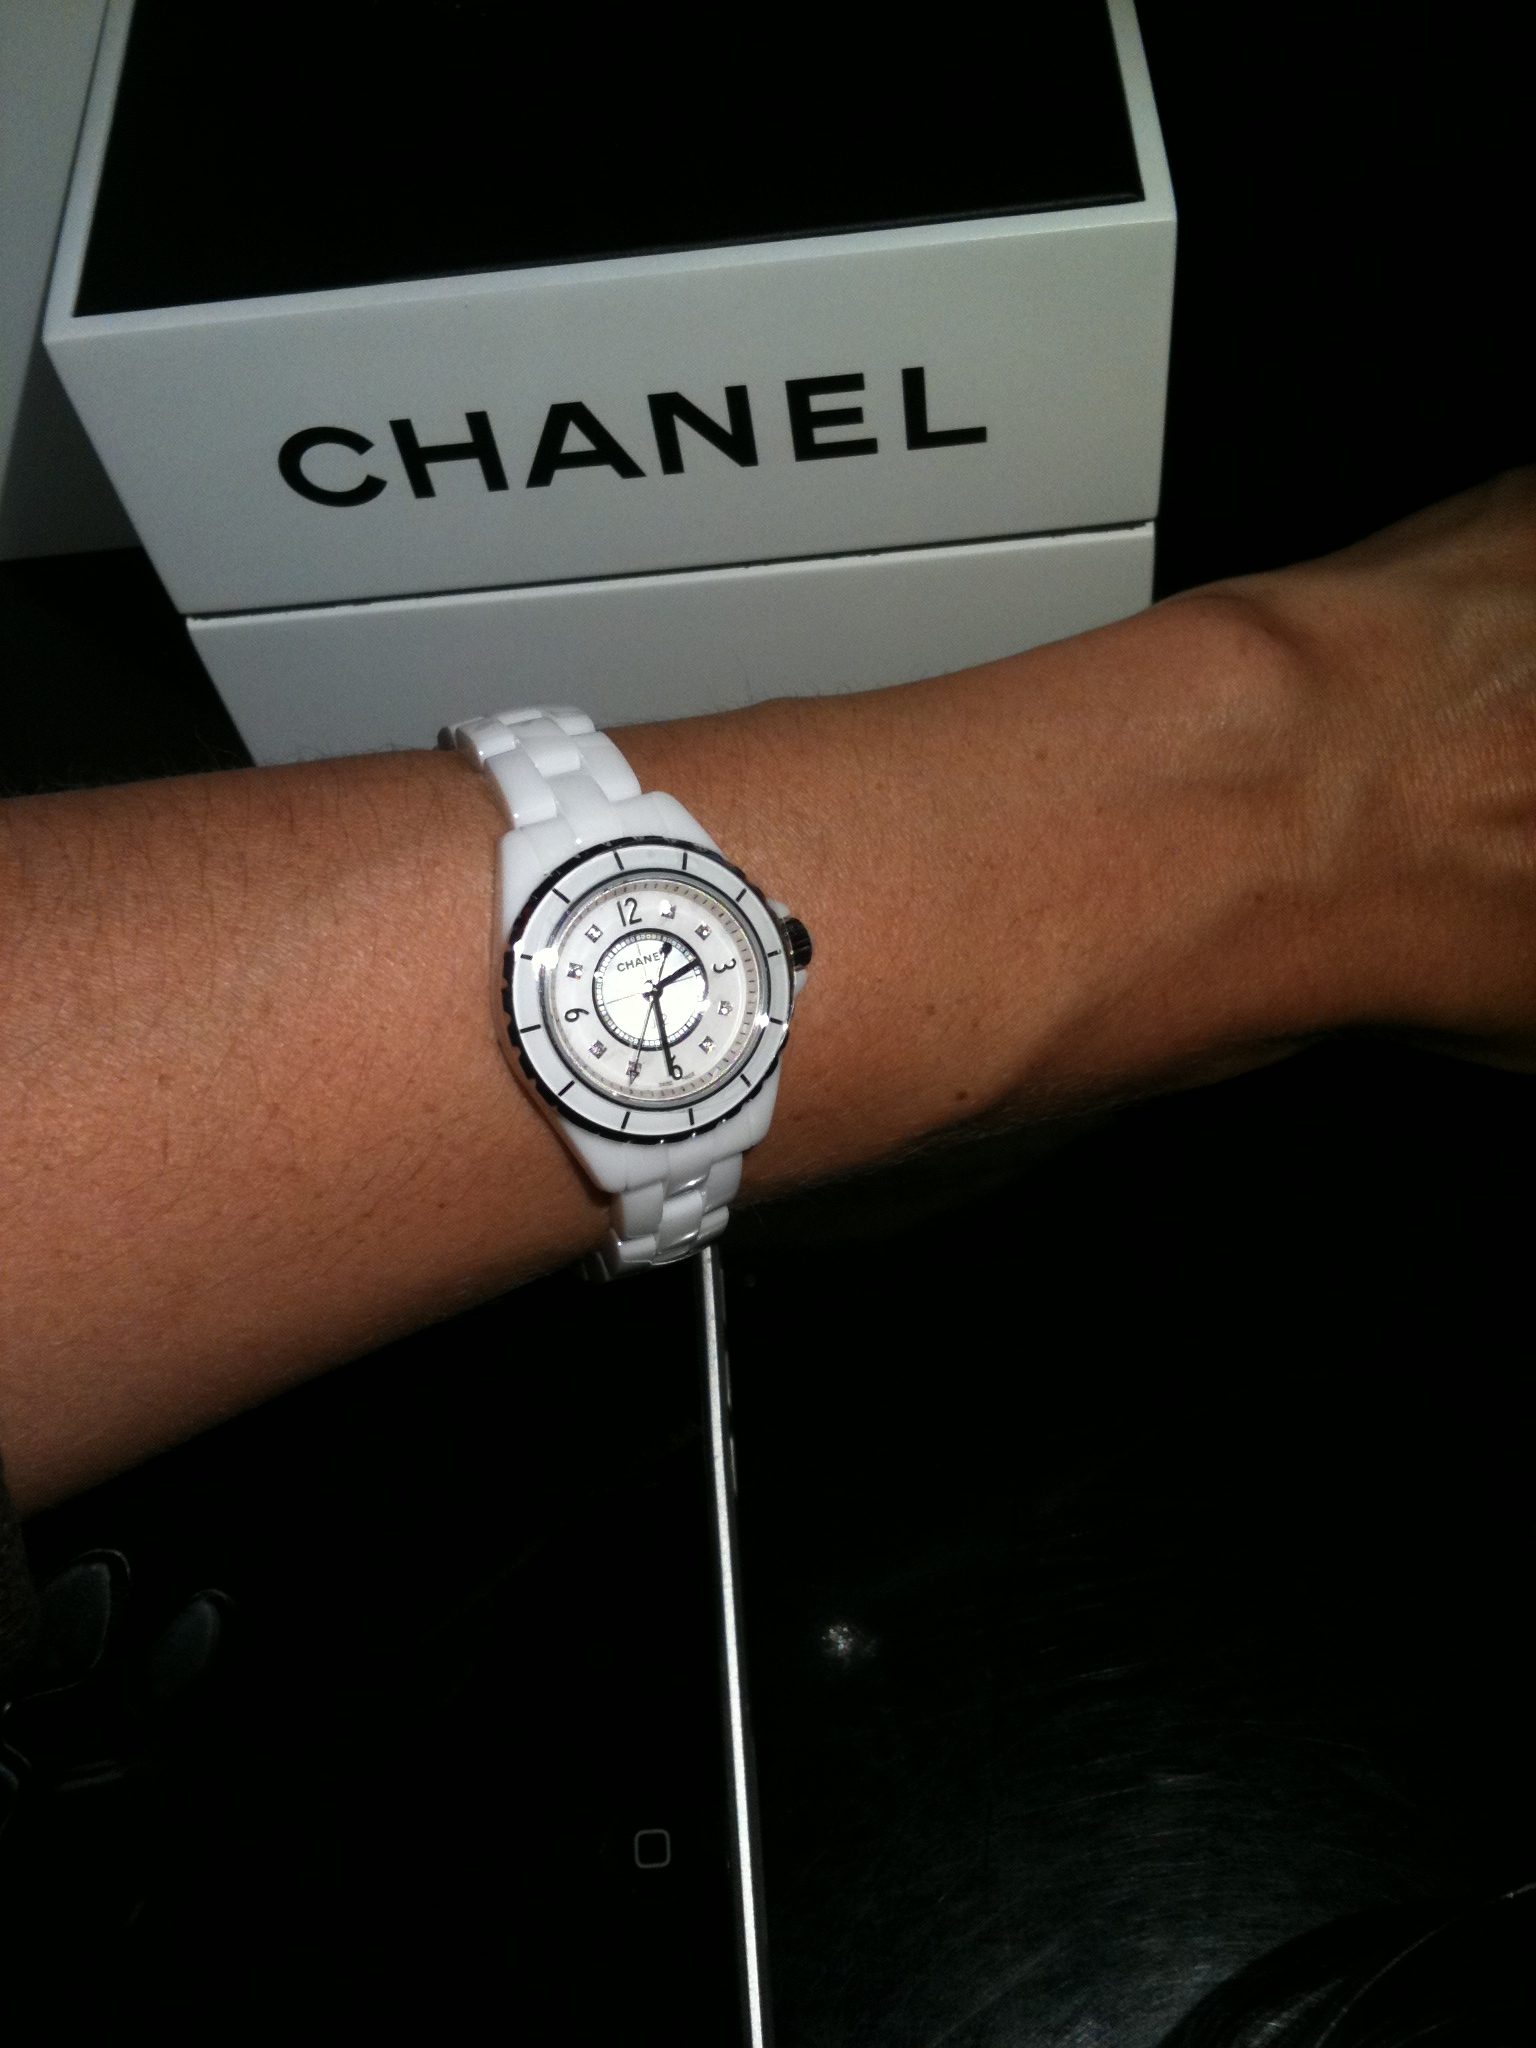 add old next s favourites updates watches to white new basel shine two fn one chanel baselworld watch